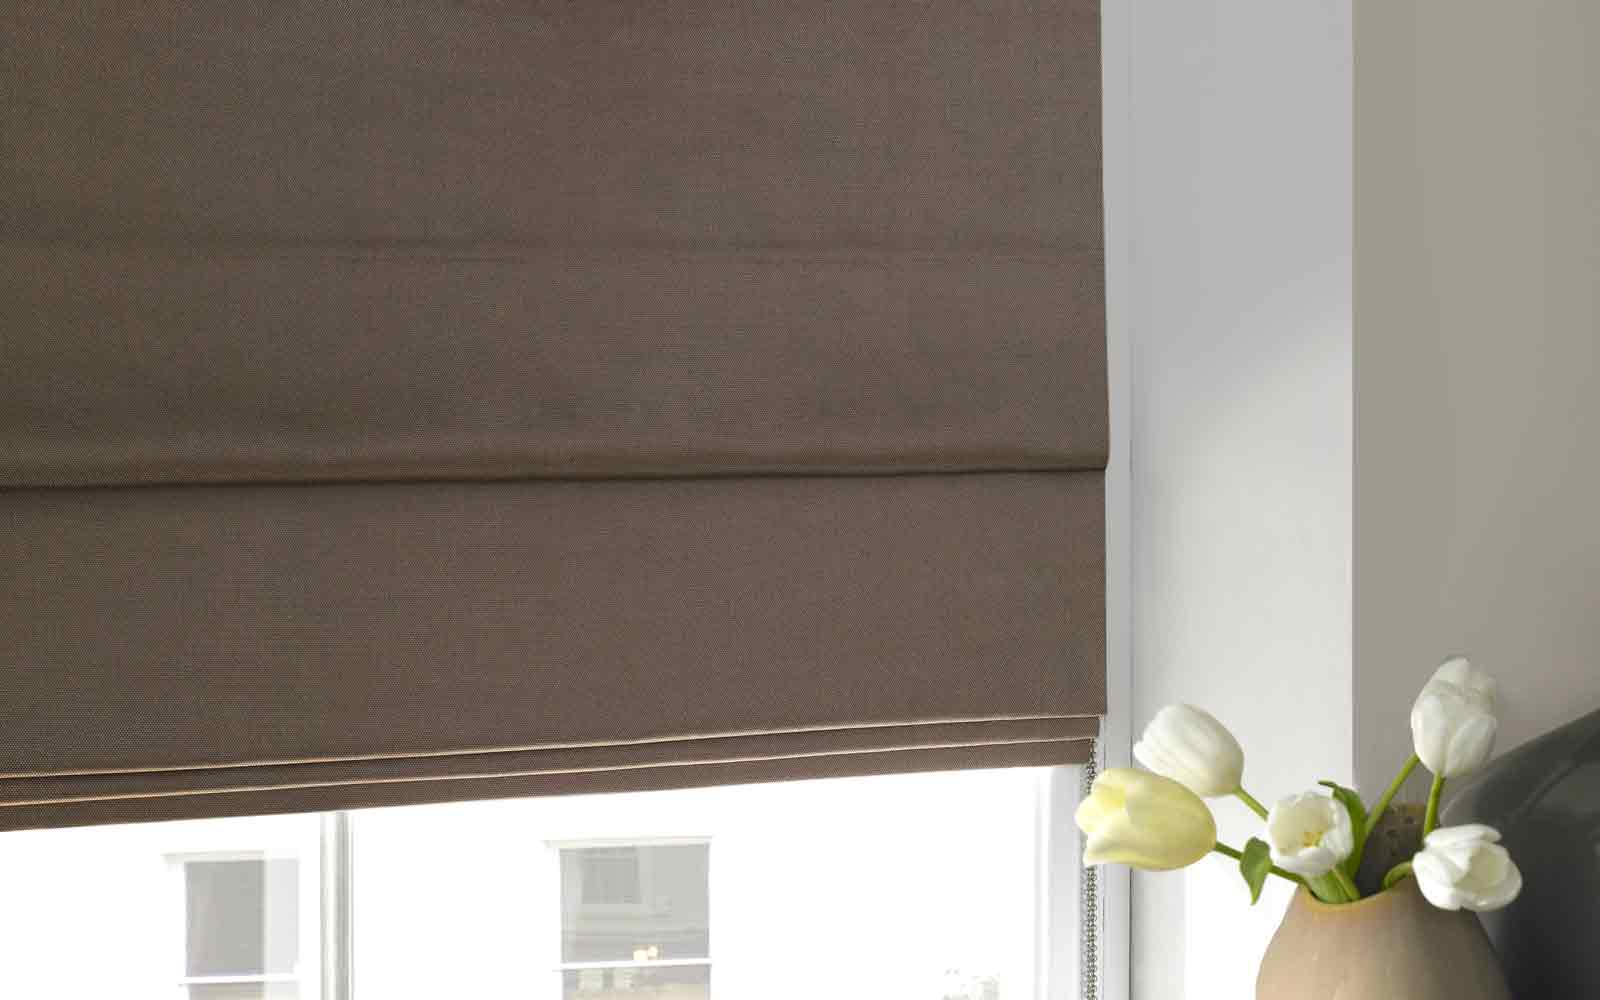 Noise Reducing Curtains Best Blinds For Noise Reduction Surrey Blinds And Shutters